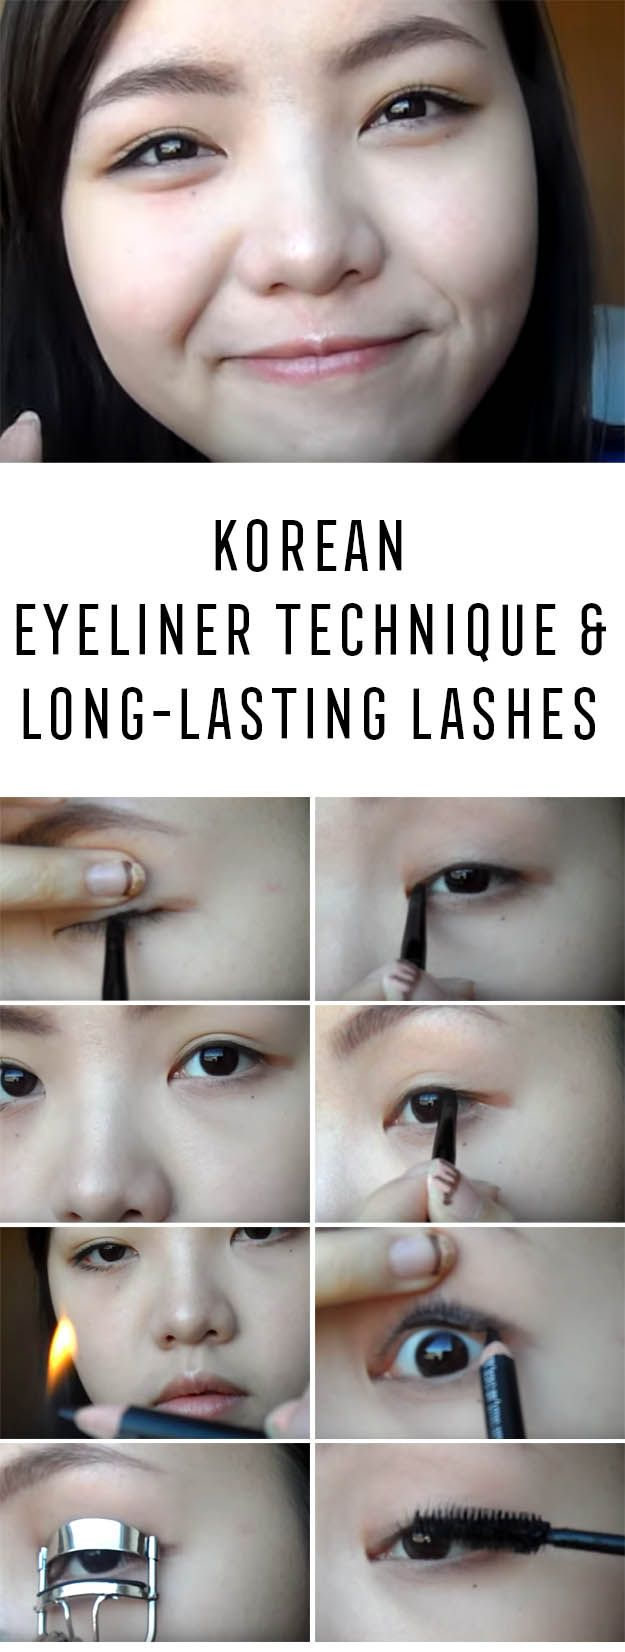 Best Korean Makeup Tutorials - [2 in1] Korean Eyeliner Technique & Long-lasting Lashes - Natural Step By Step Tutorials For Ulzzang, Pony, Puppy Eyes, Eyeshadows, Kpop, Eyebrows, Eyeliner and even Hairstyles. Super Cute DIY And Easy Contouring, Foundation, and Simple Dewy Skin Help For Beginners - https://www.thegoddess.com/best-korean-makeup-tutorials